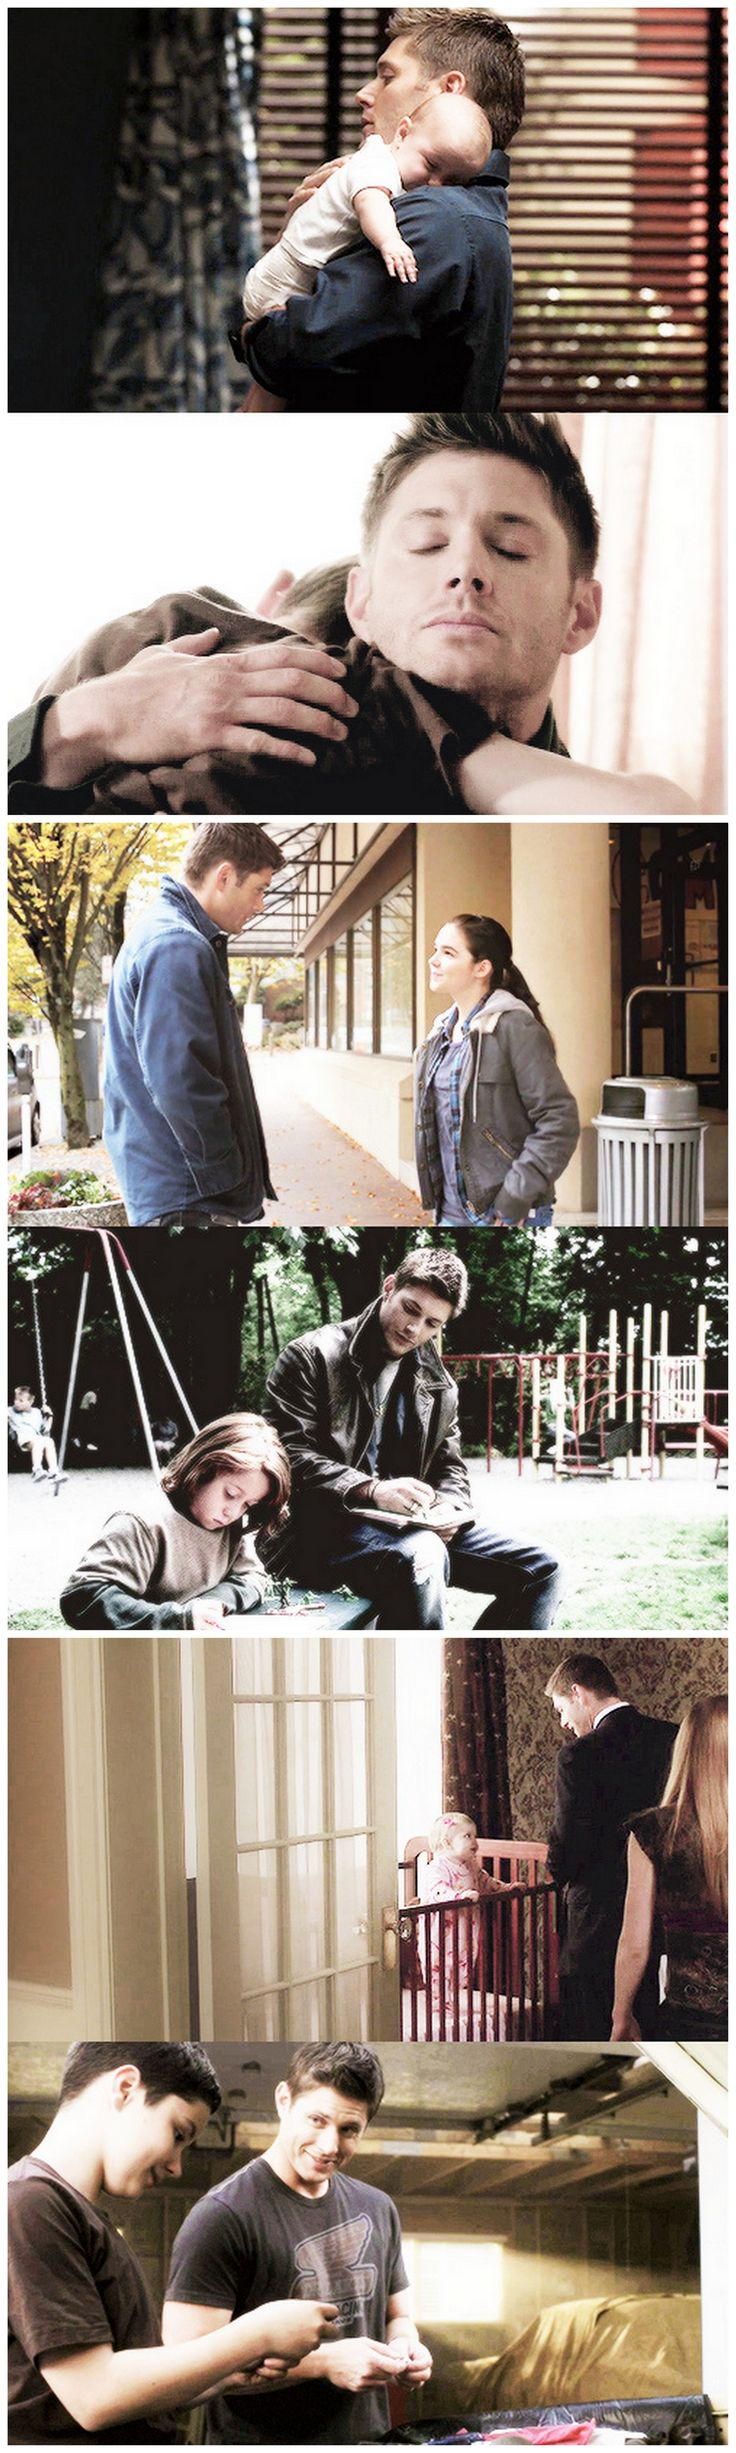 Dean is always the one with the kids, Sam is better at speaking to the adults so they answer questions, but Dean can talk to the kids. But you don't get it, he practically raised Sam since he was 4, he was always the one to give him dinner & tuck him in, he was the one who stayed home to take care of Sam when their dad was out hunting. This is why Sam never saw eye to eye with their dad, not just because they never got along, but cause he was never a dad to him. Dean was his brother and…